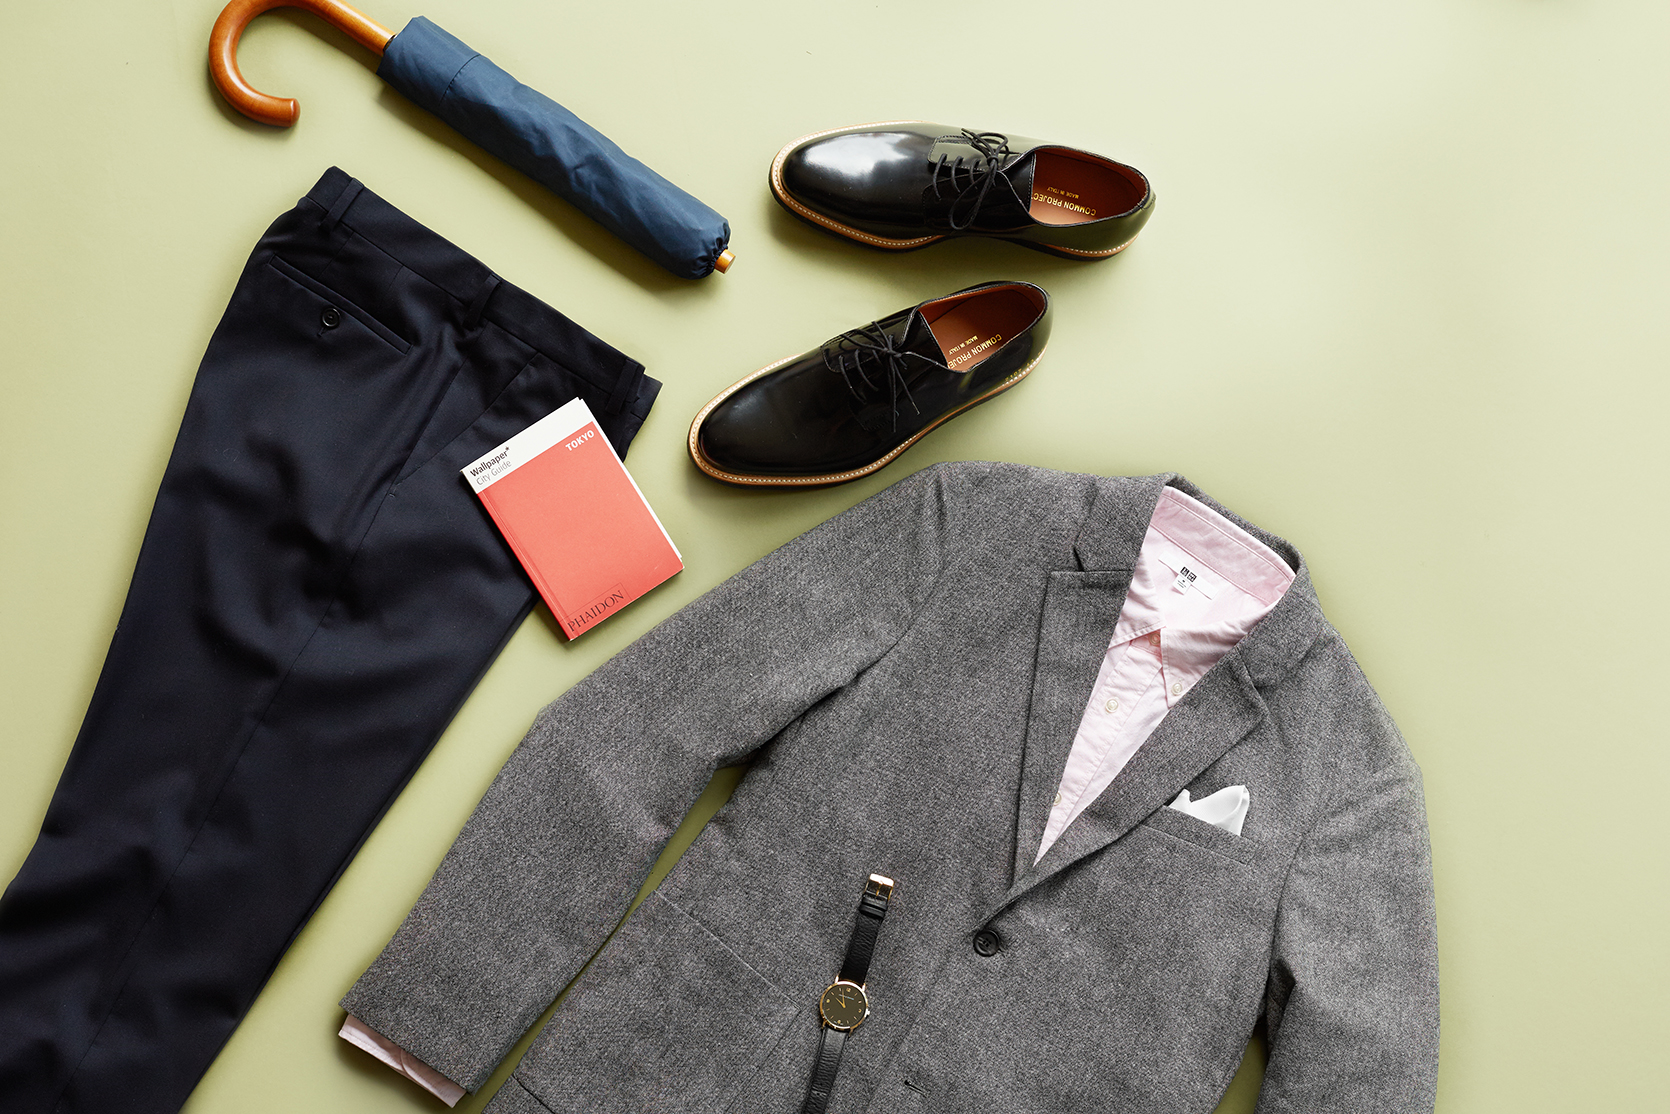 Outfit with contrasting textures